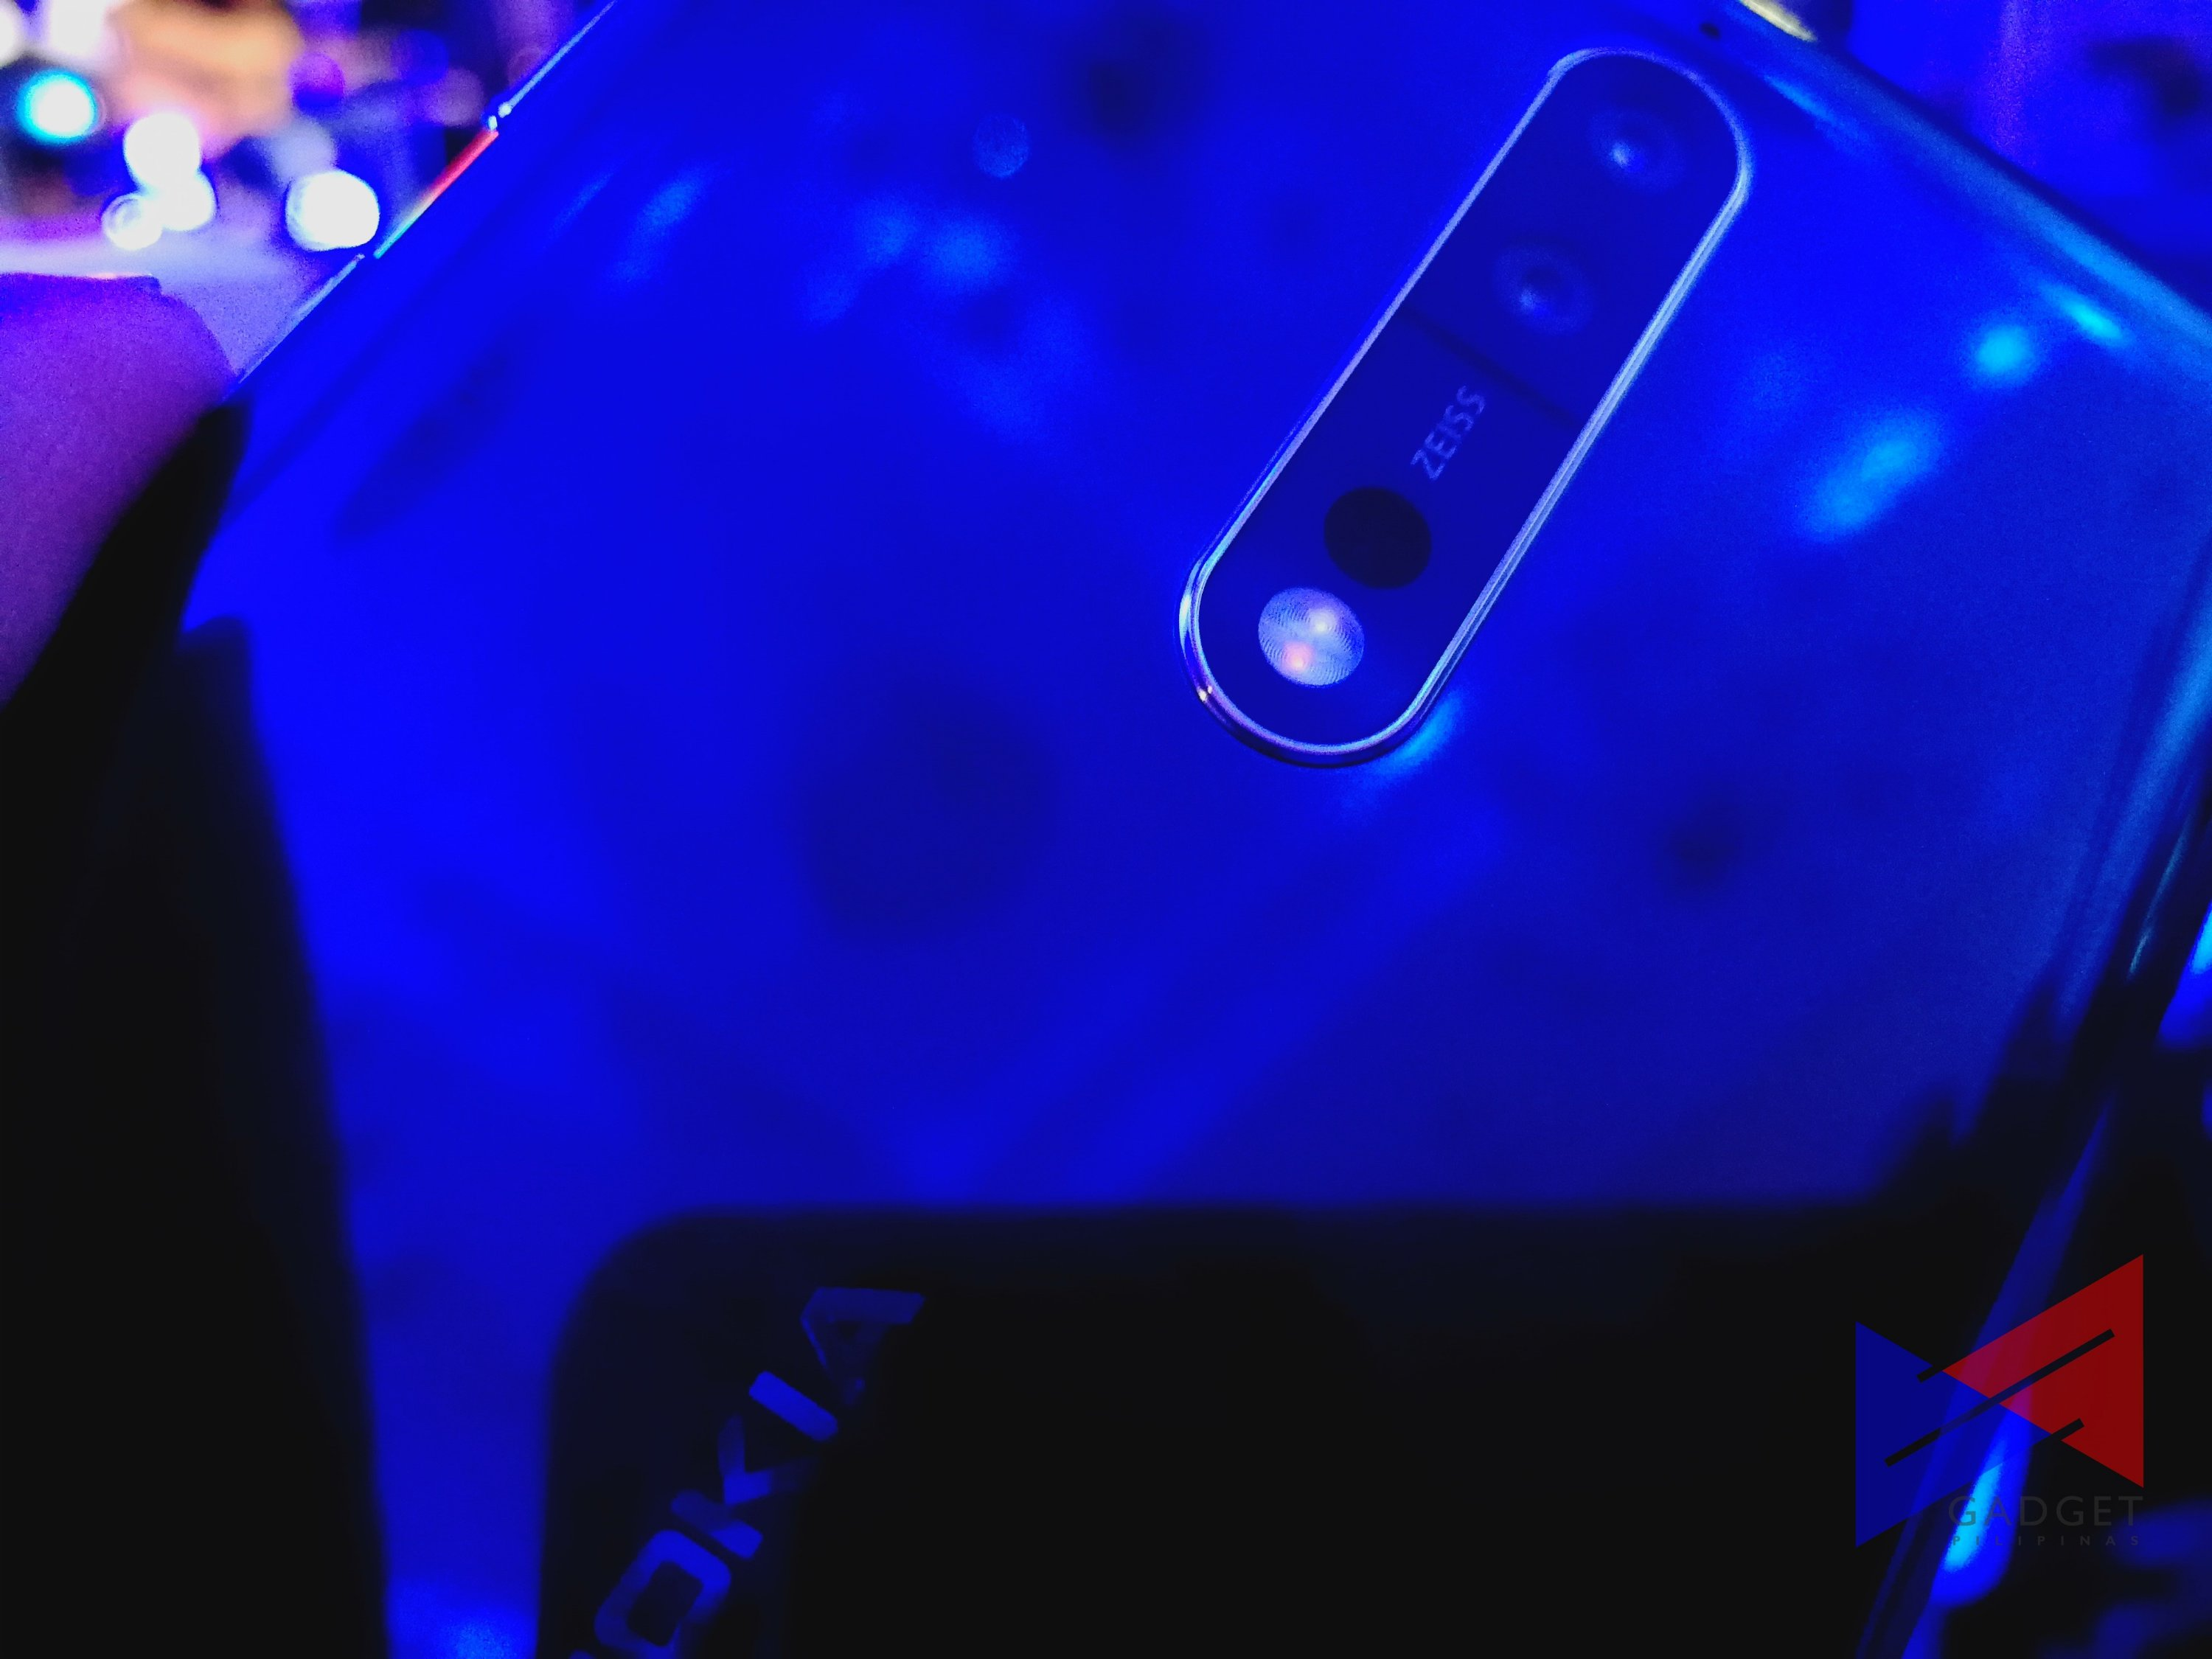 img 20170929 175548 wm149440692 - Nokia 8 Launches in PH: Zeiss Optics, Snapdragon 835